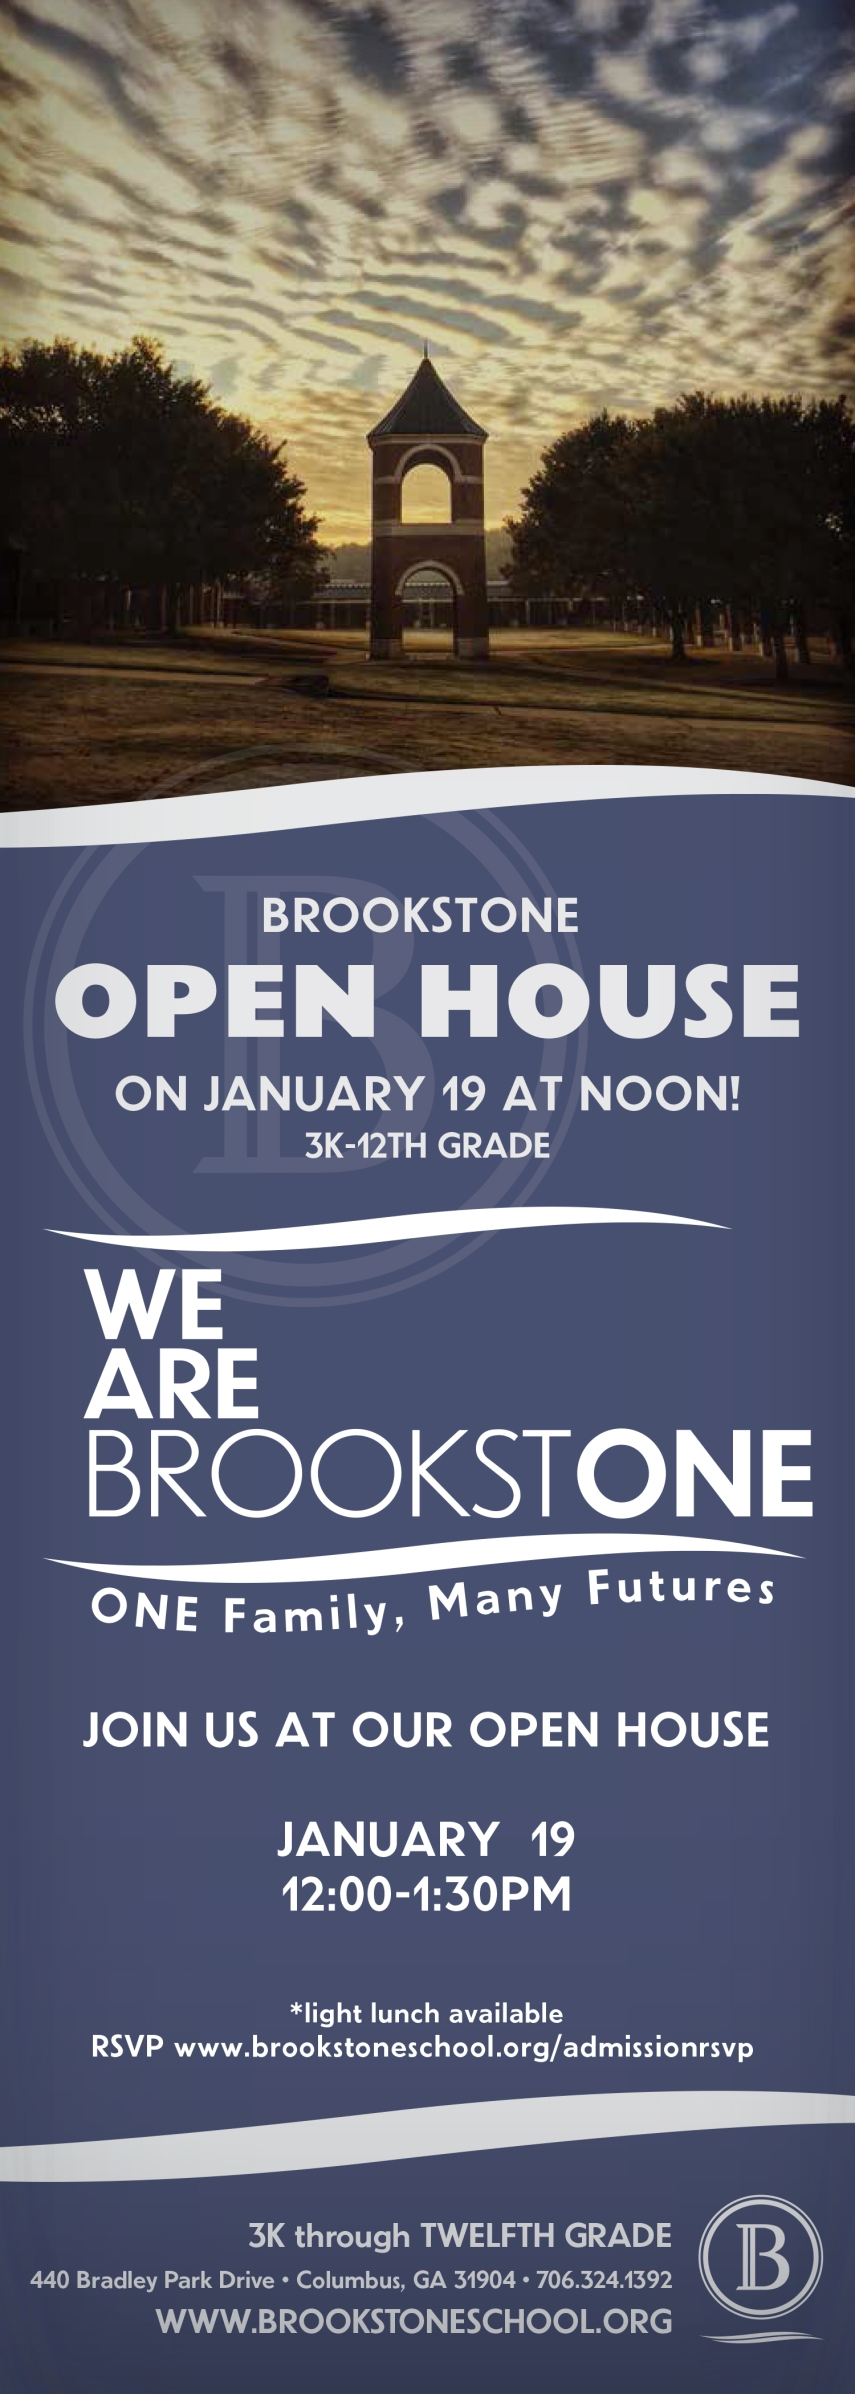 BROOKSTONE OPEN HOUSE EMAIL (1).jpg